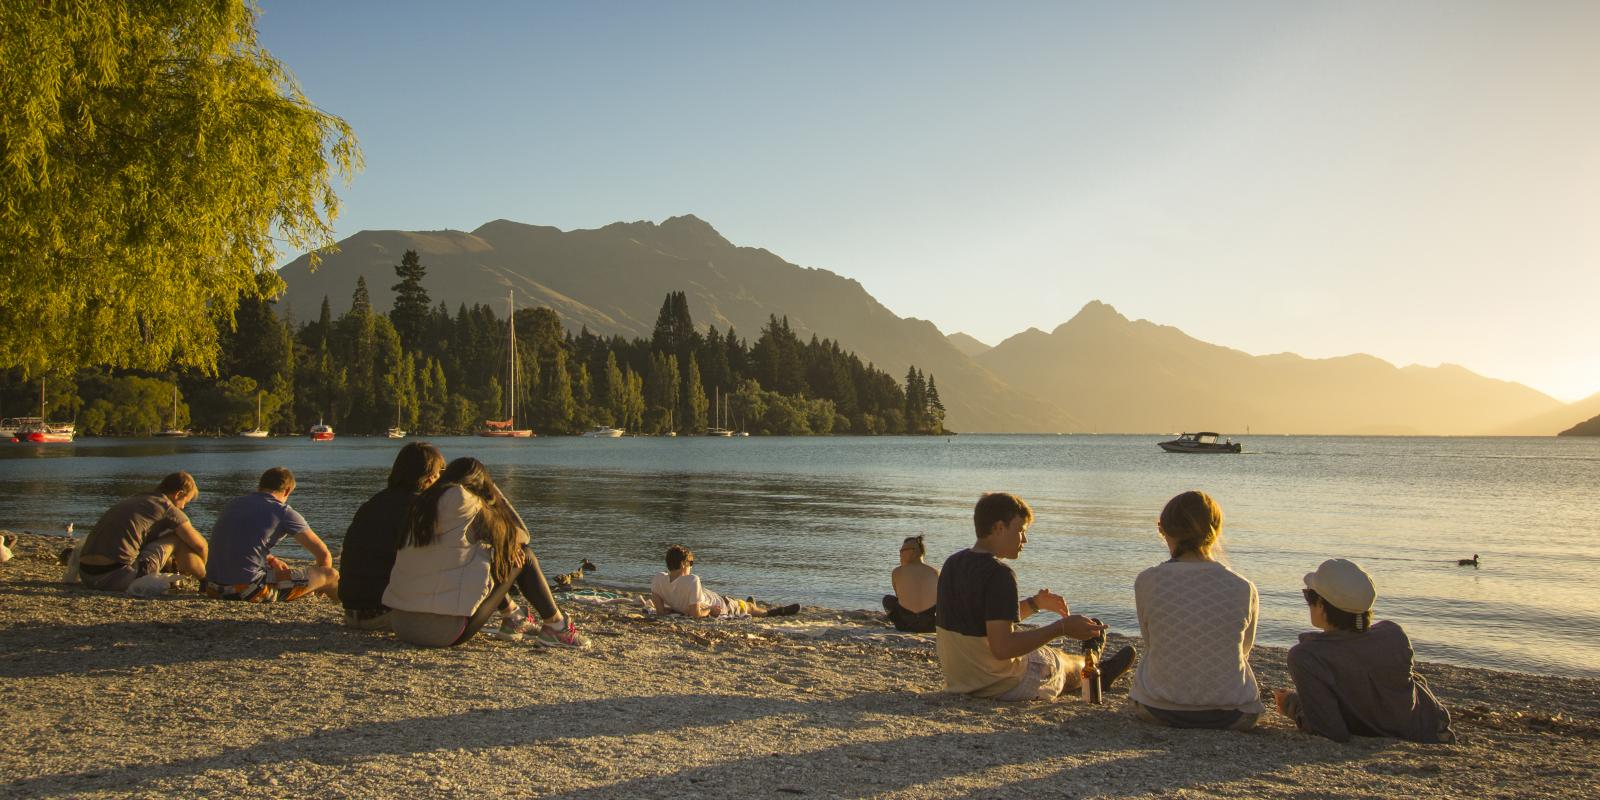 Watching the sunset on Queenstown Bay